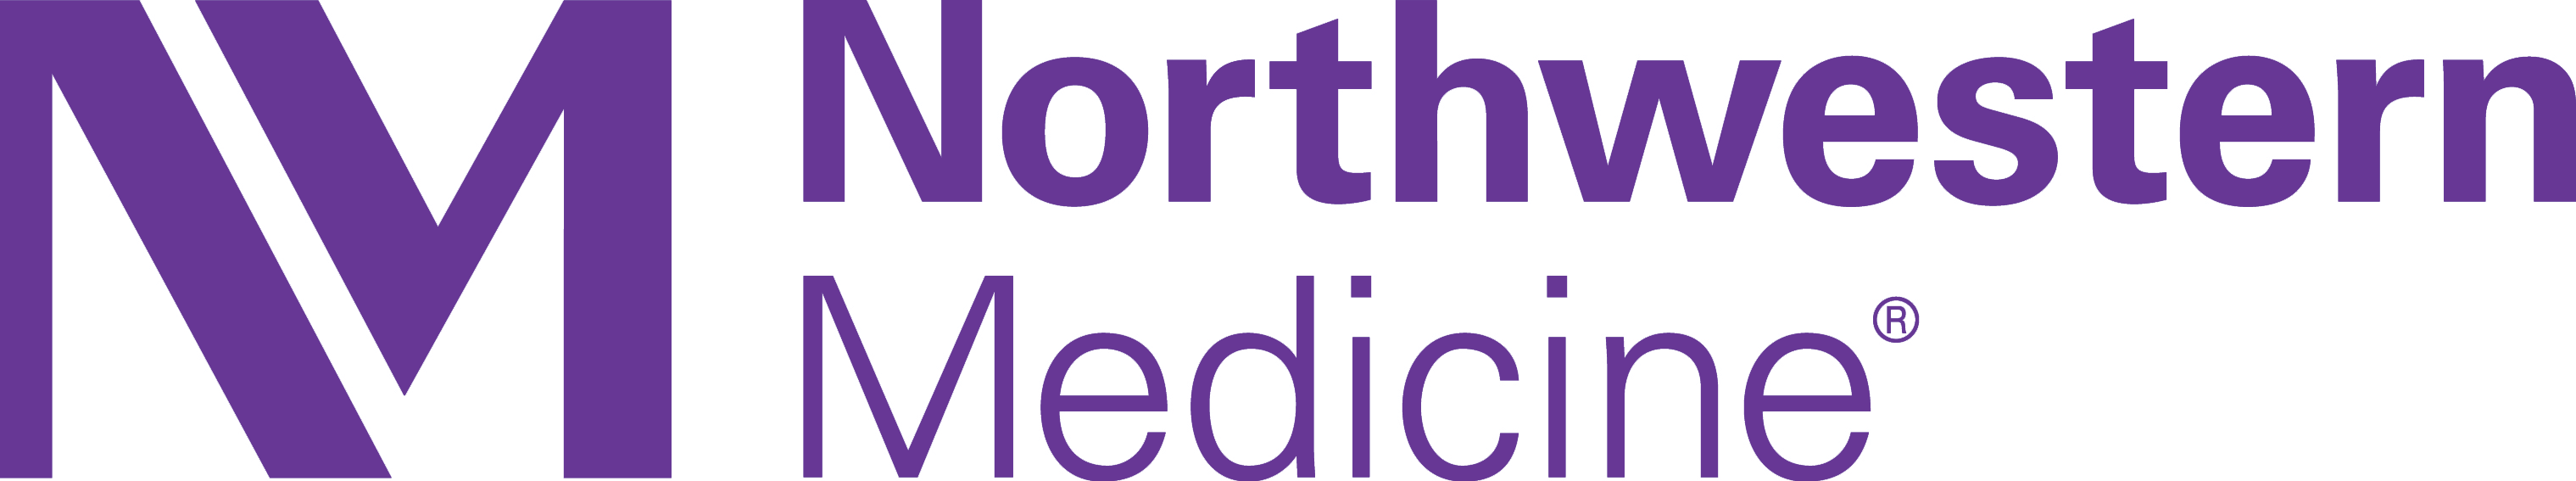 The logo for Northwestern Medicine.